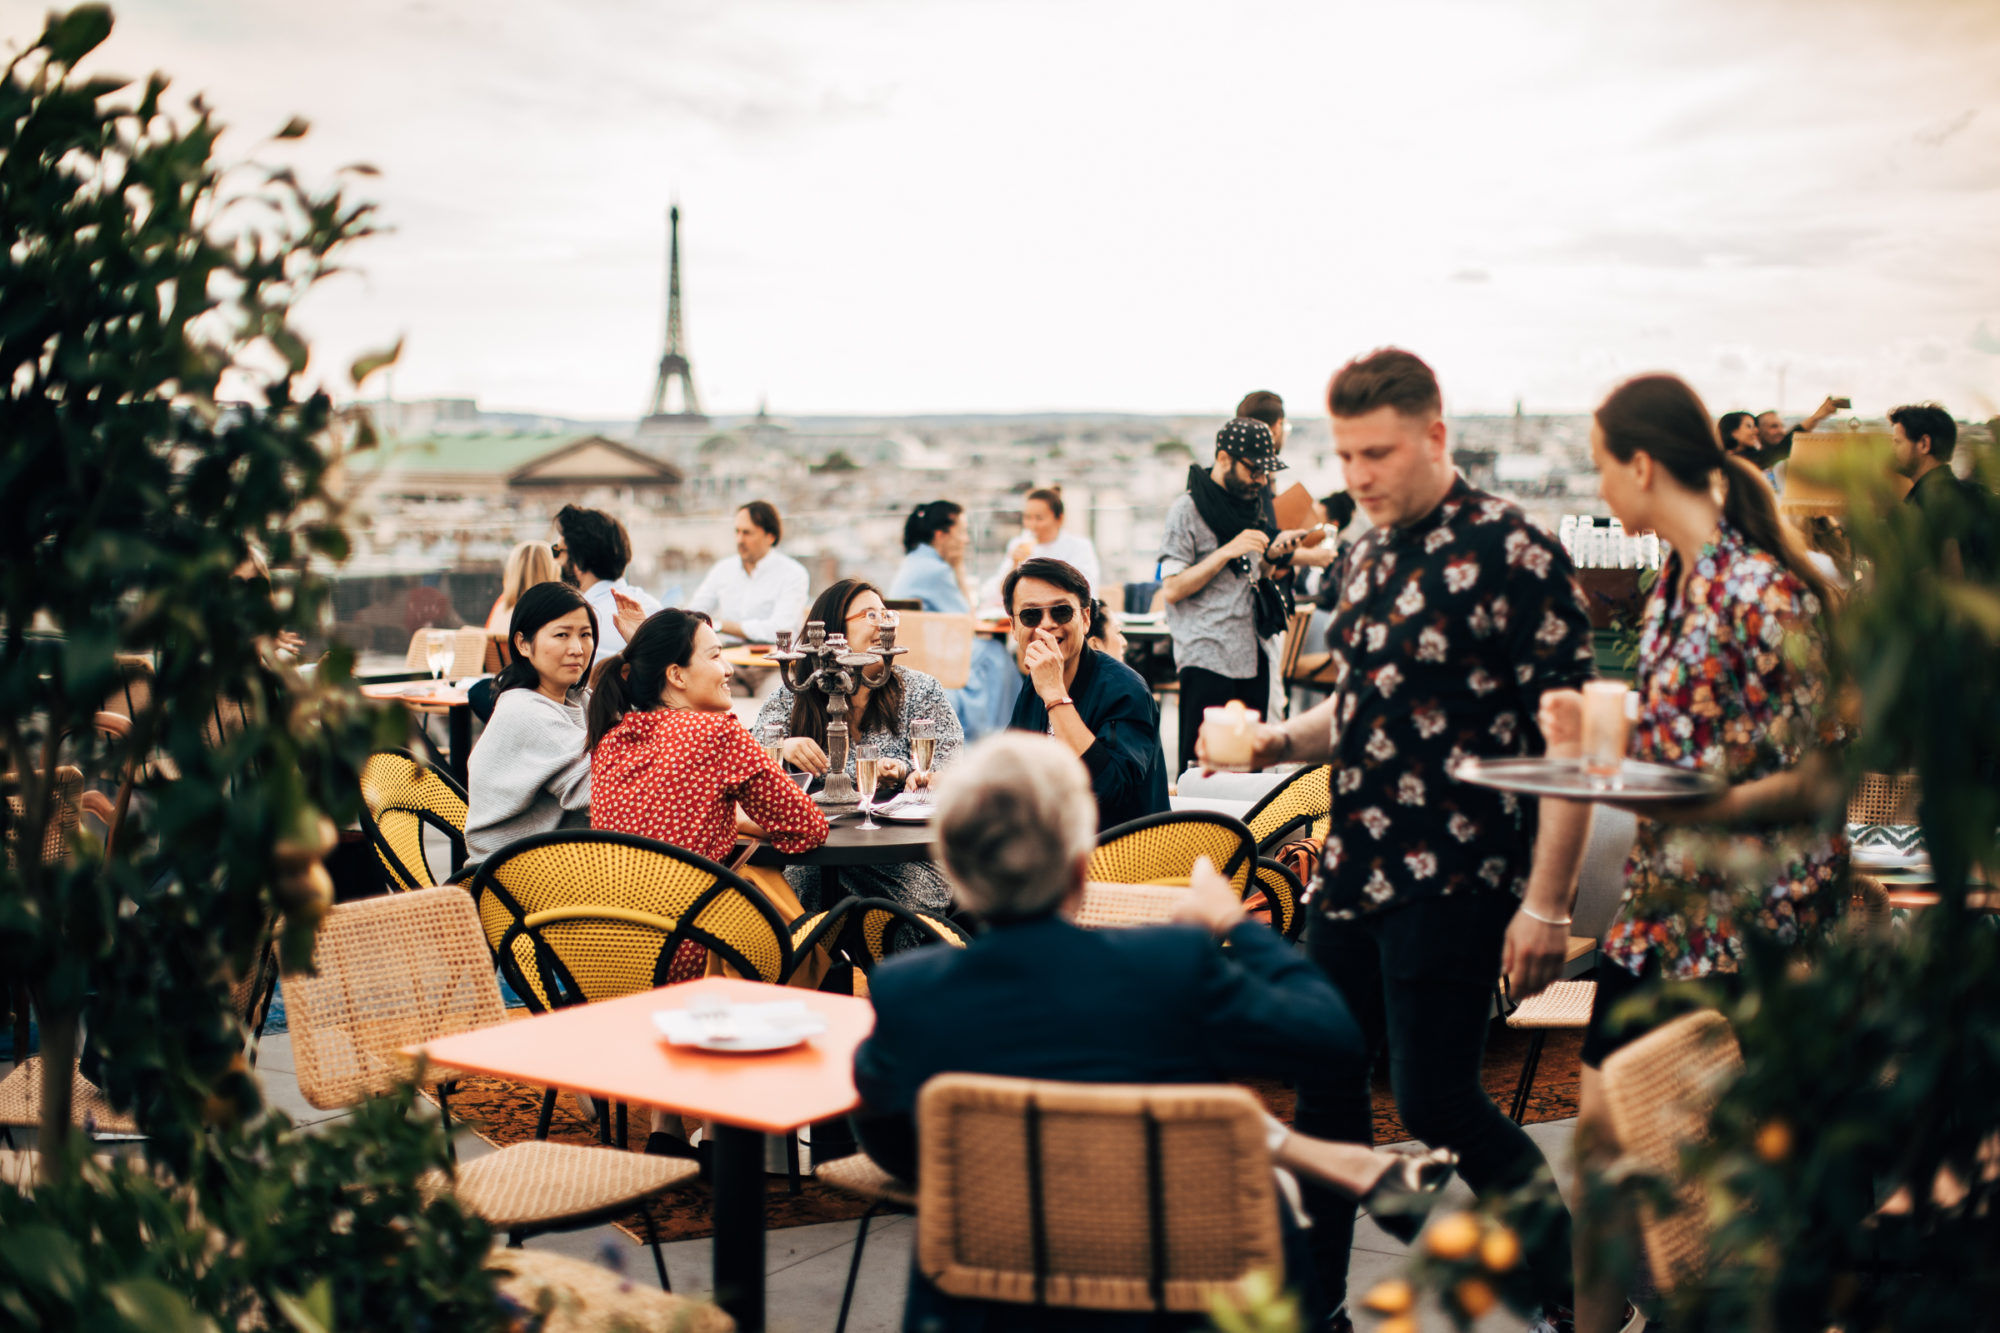 New rooftop bar in Paris, Creatures, has a great view of the Eiffel Tower.